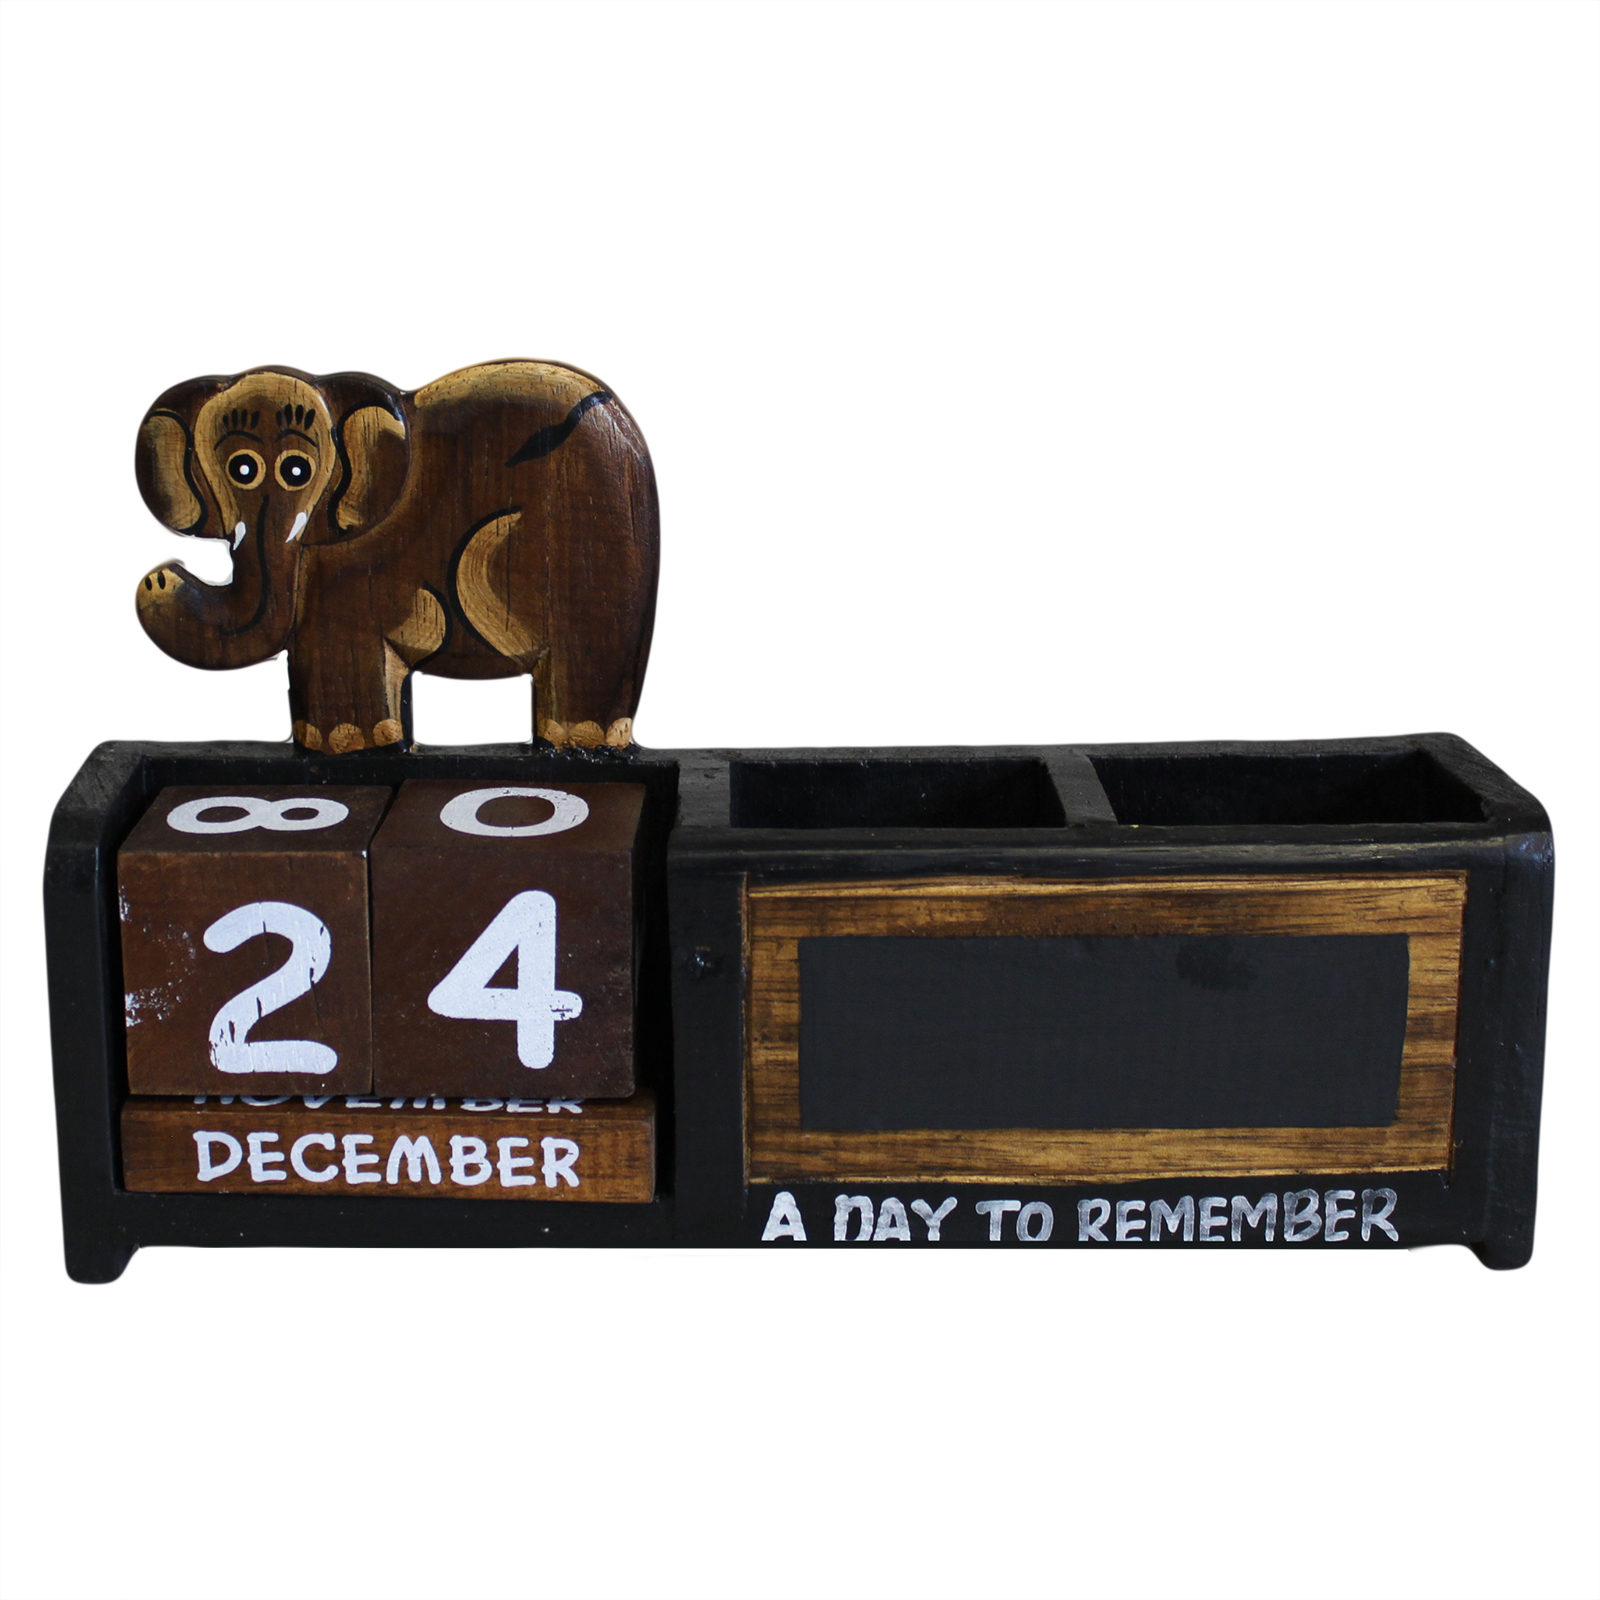 Day to Remember pen holder - Brown Elephant